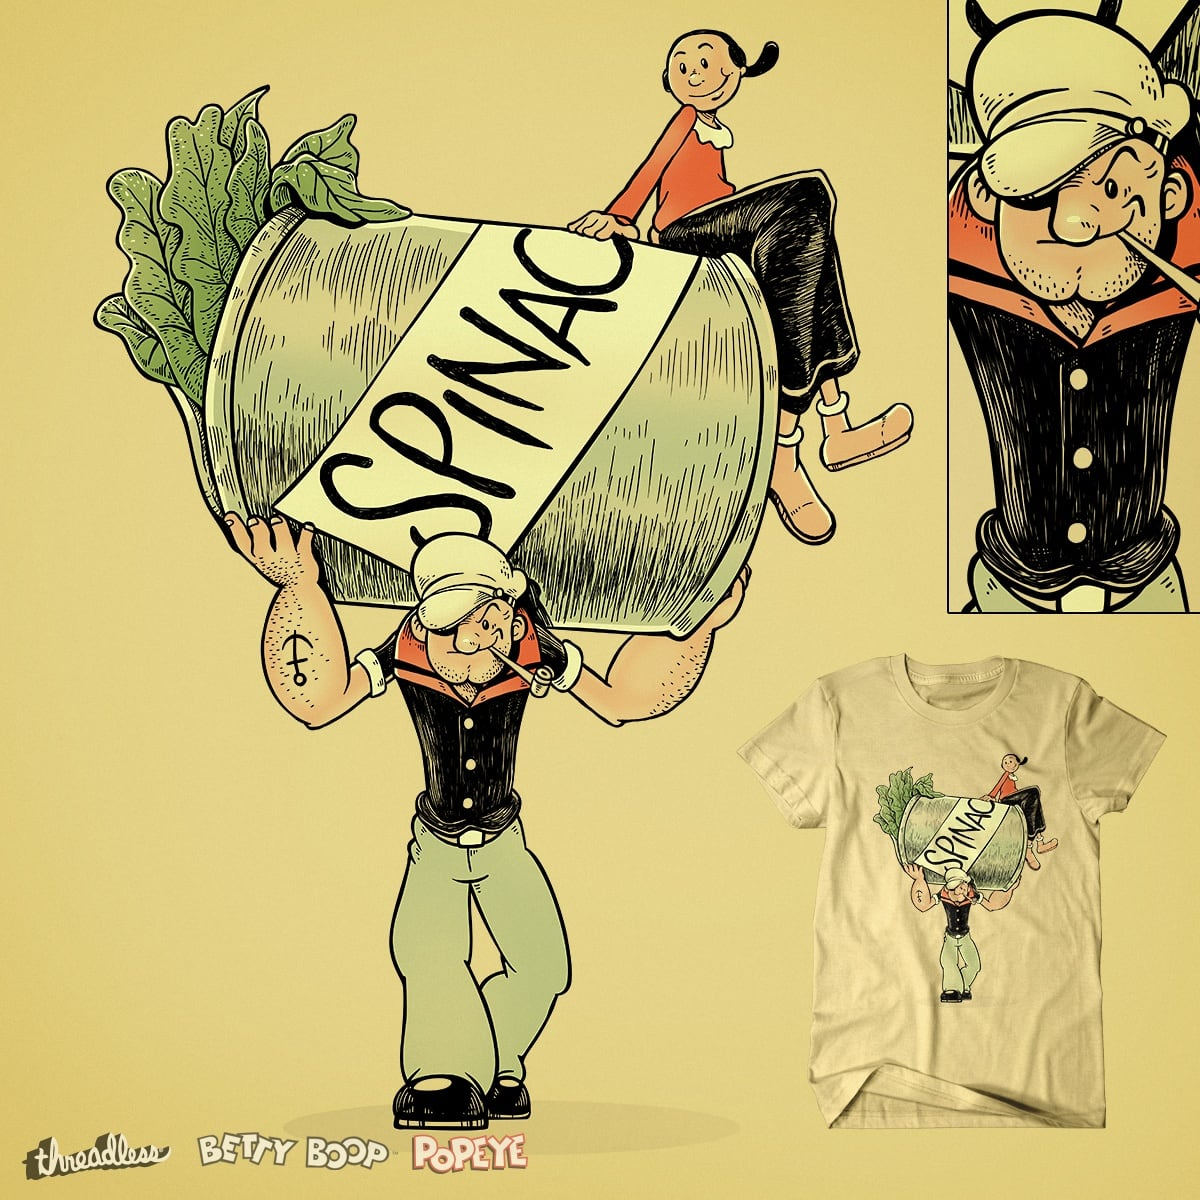 Score The Sailor Man with the Spinach Can by rhobdesigns on Threadless